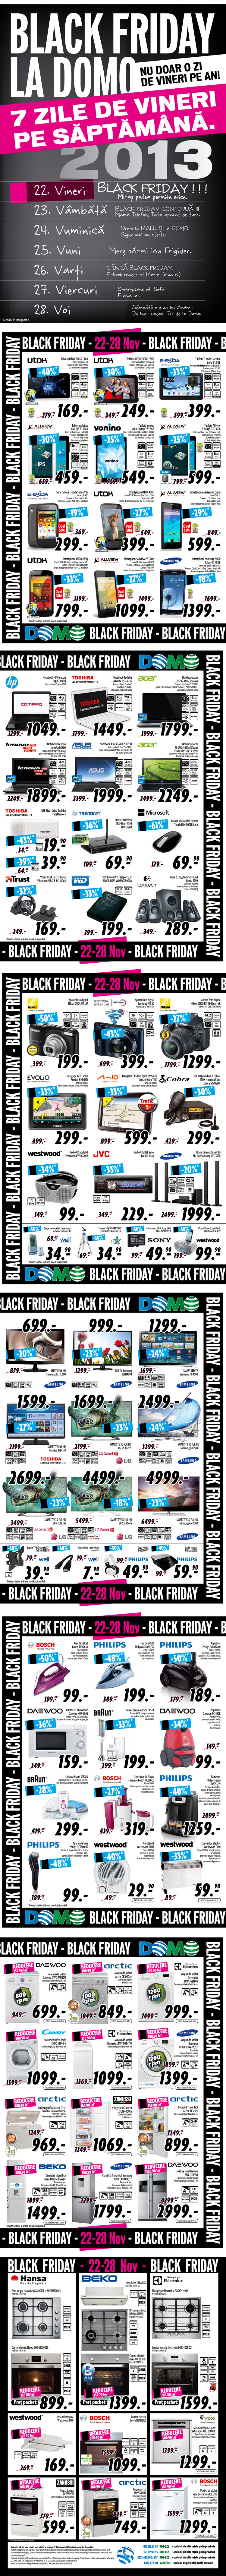 catalog domo black friday 2013